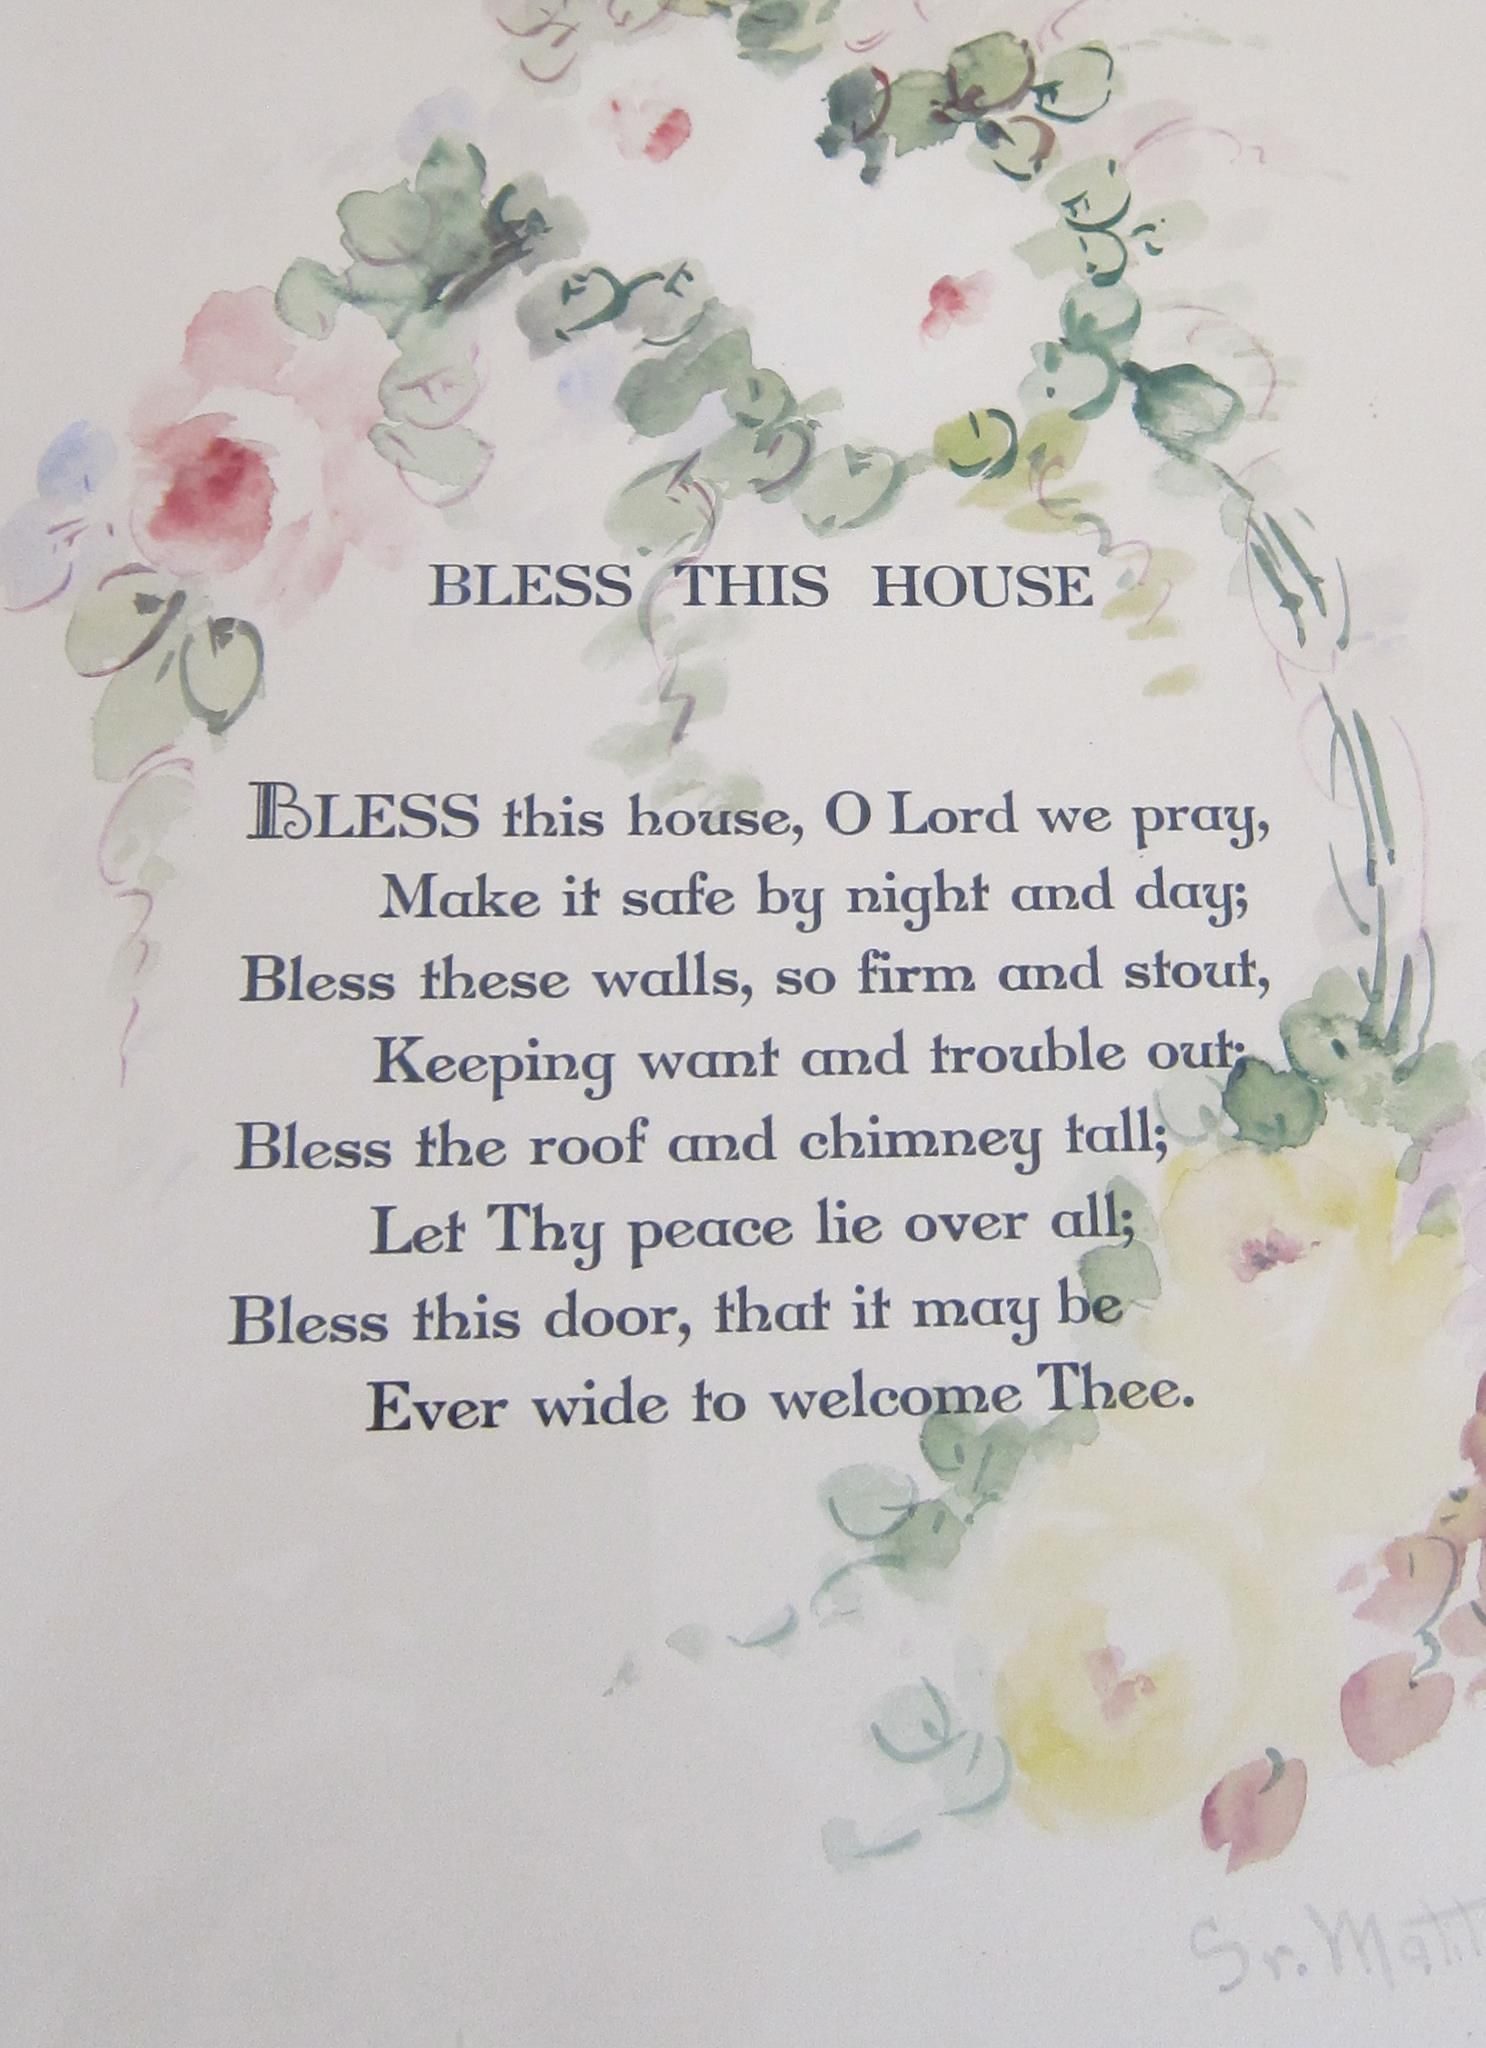 Bless This House Prayer Bless This House O Lord We Pray